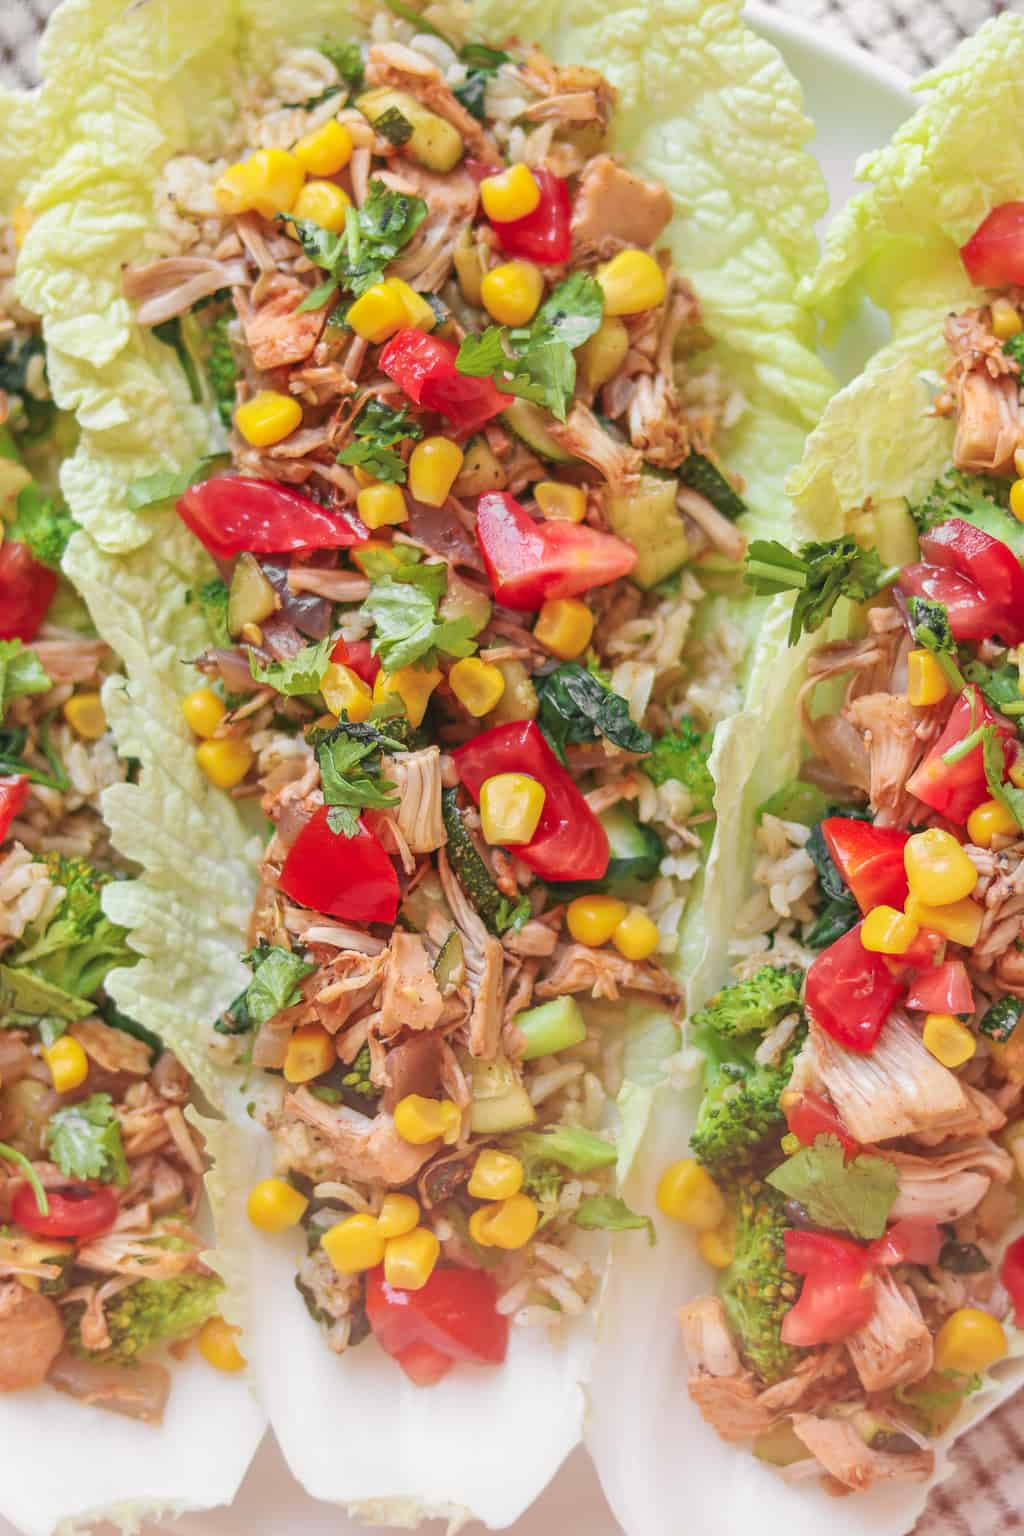 Closeup of vegan lettuce wraps with jackfruit, brown rice and fresh vegetables